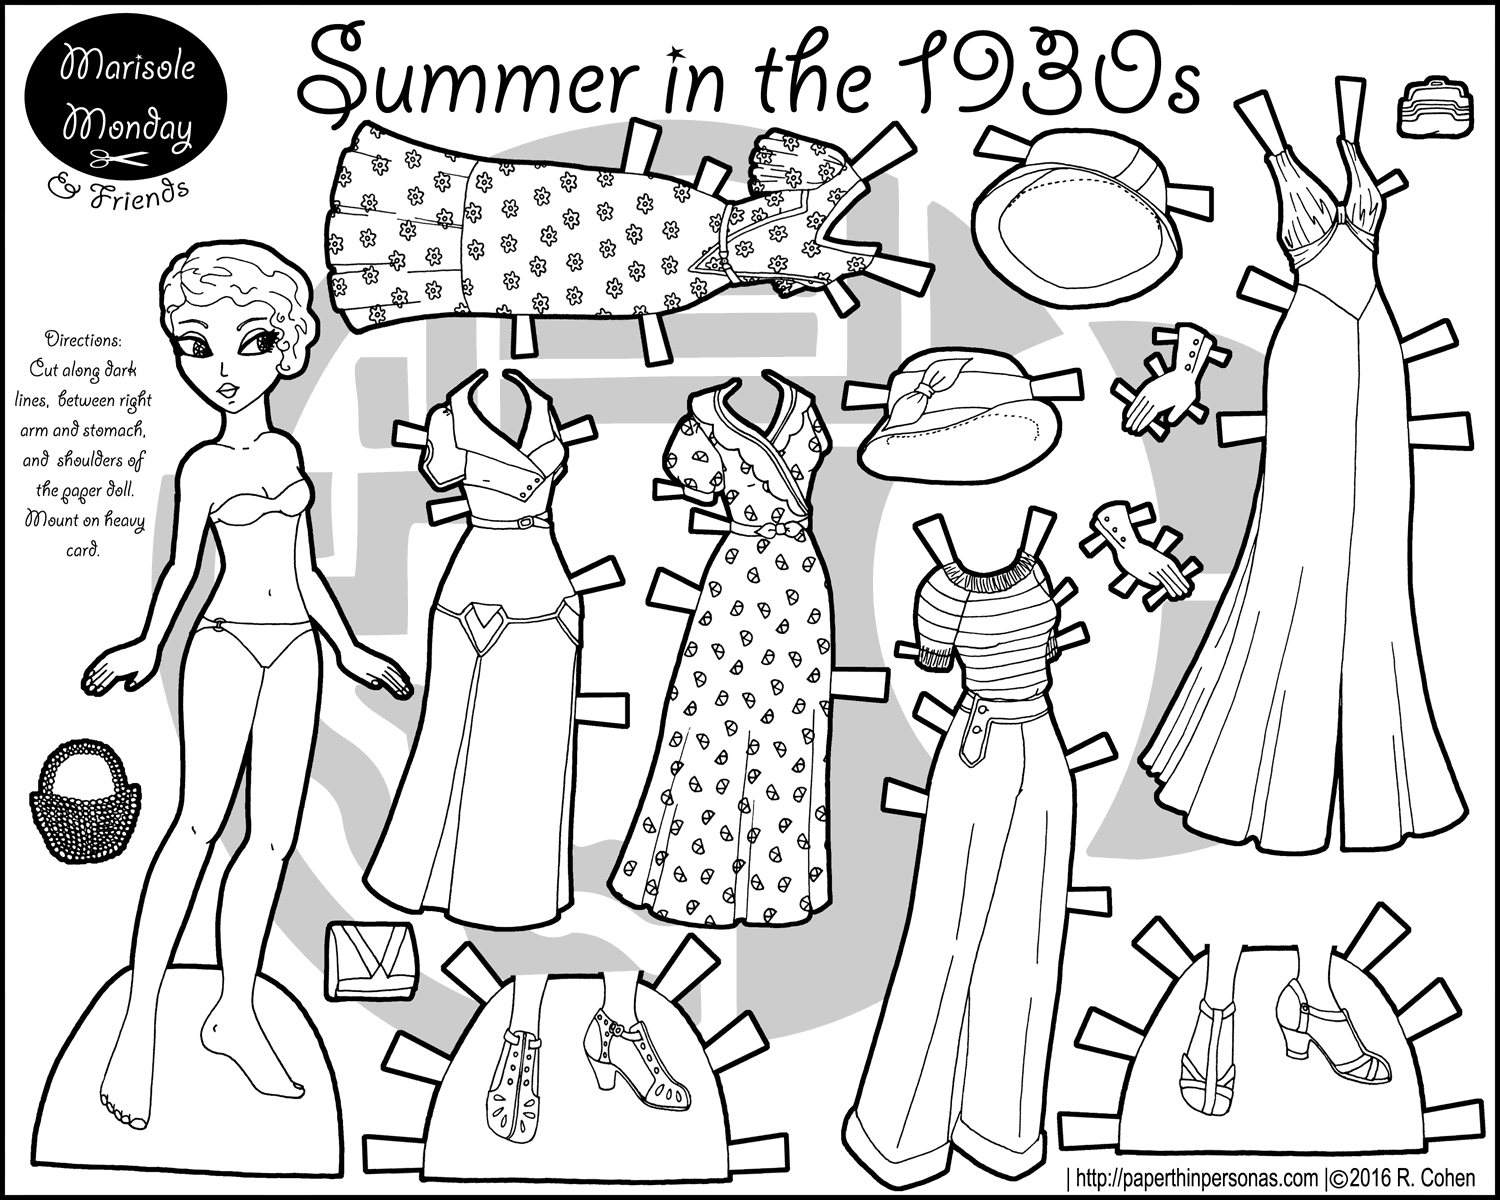 A paper doll coloring page celebrating the 1930s with a